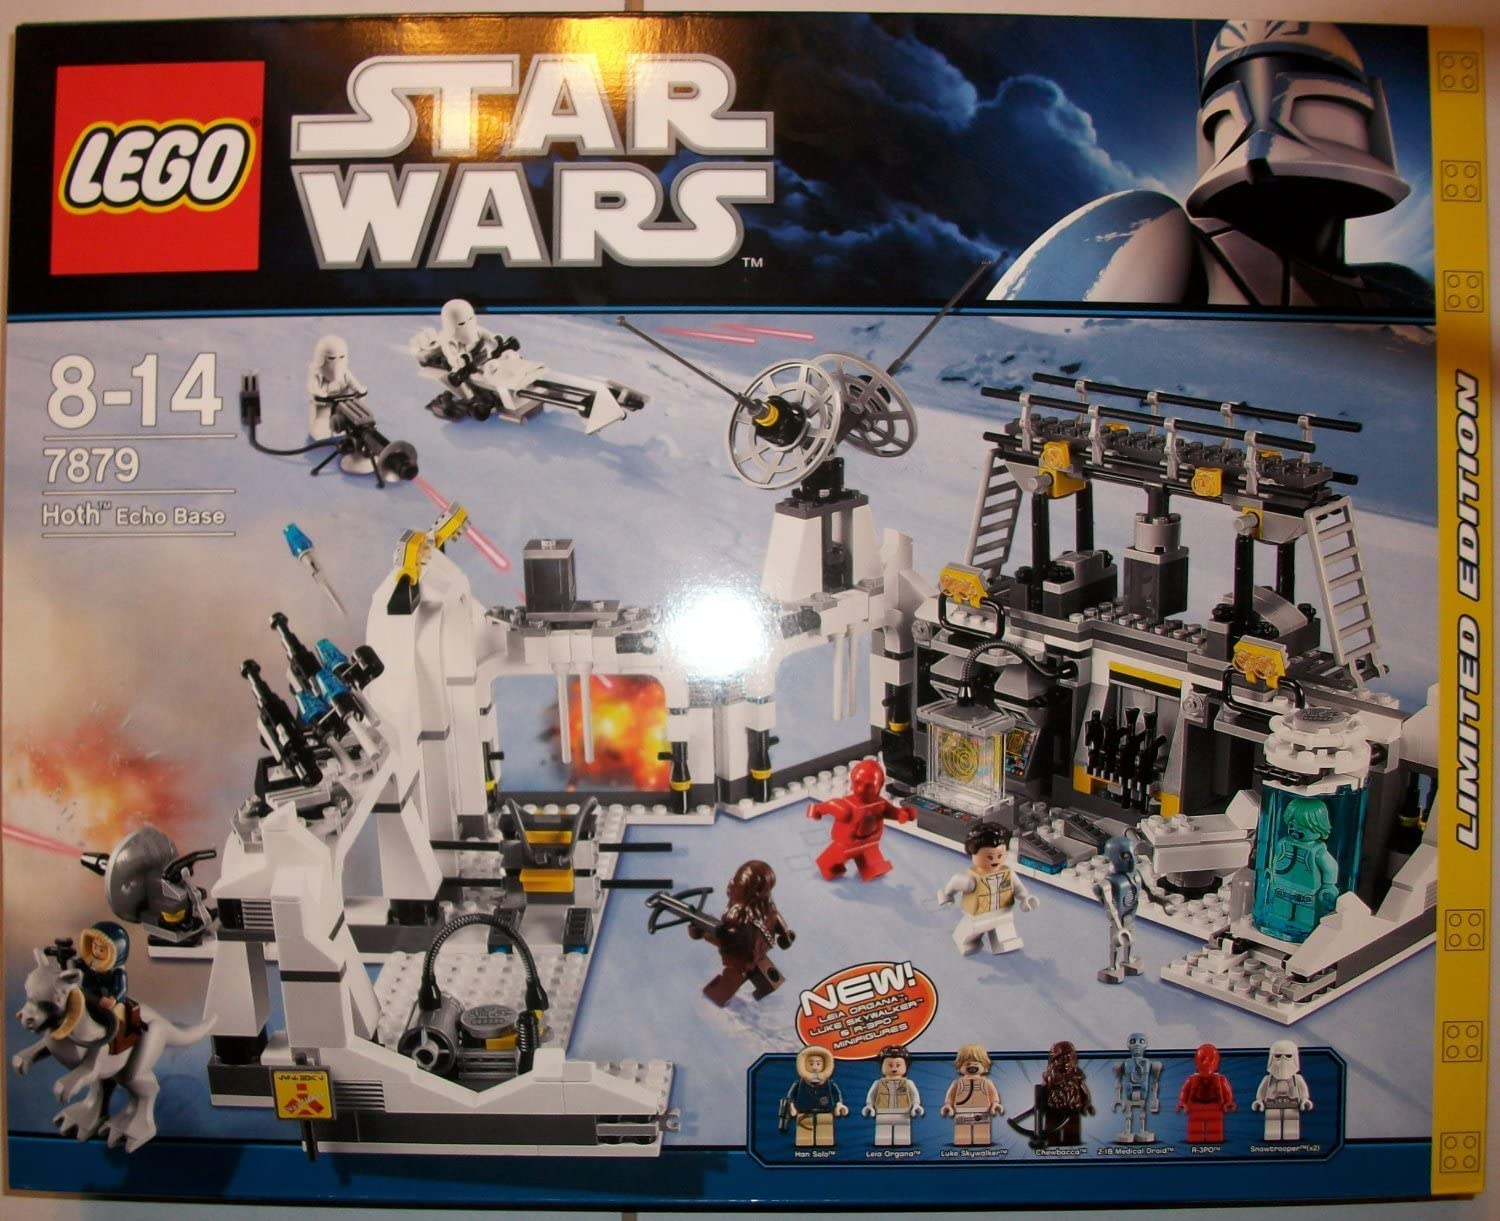 š LEGO Lego Star Wars 7879 SW host - based echo Star Wars Hoth Echo Base 81a52BQwcdiLSL1500_